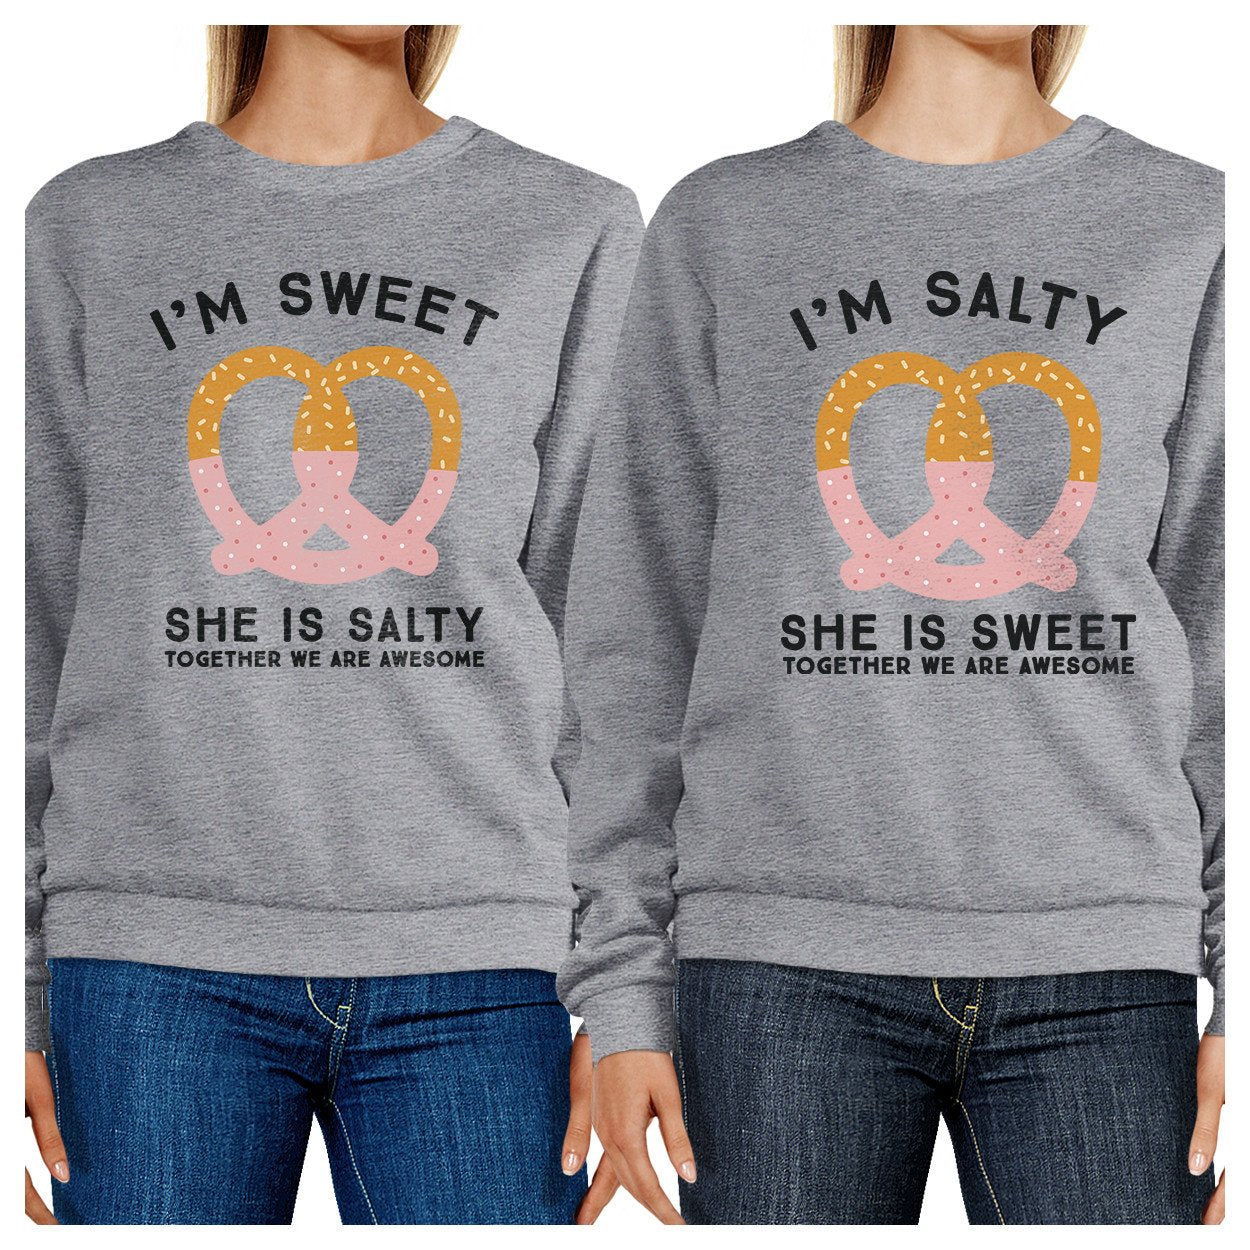 Sweet And Salty BFF Matching Grey Sweatshirts